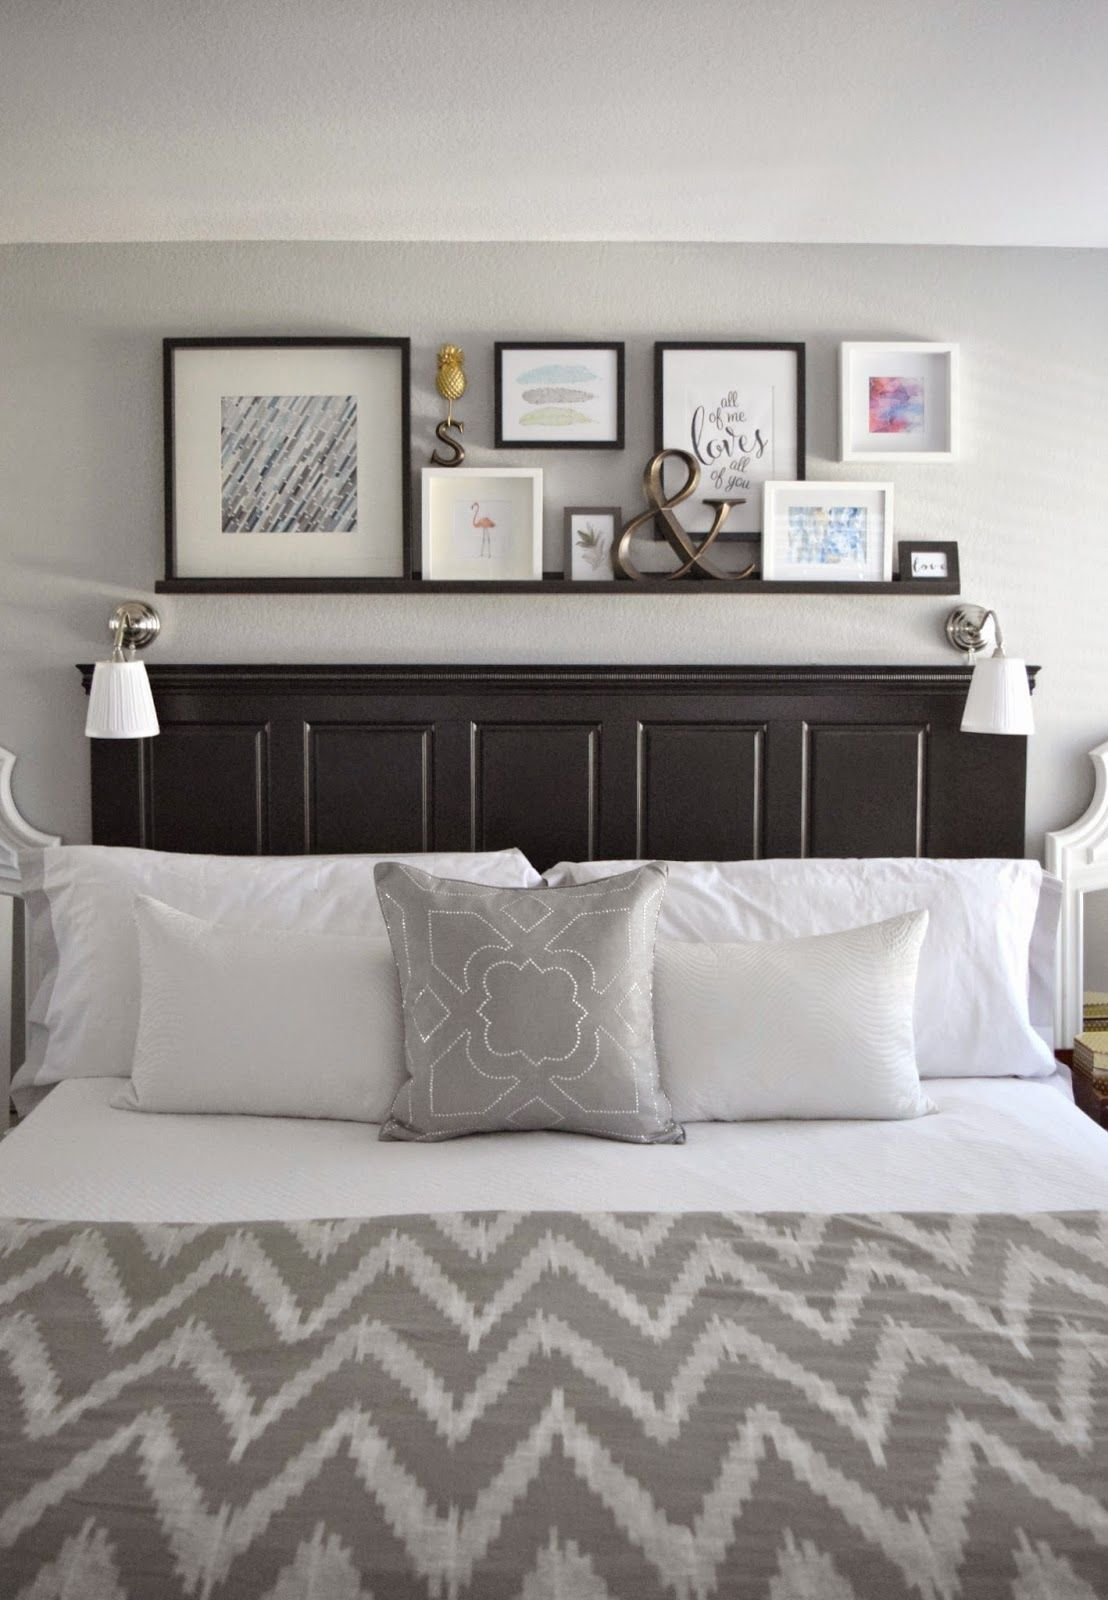 Bedroom wall decorating ideas picture frames - 23 Decorating Tricks For Your Bedroom